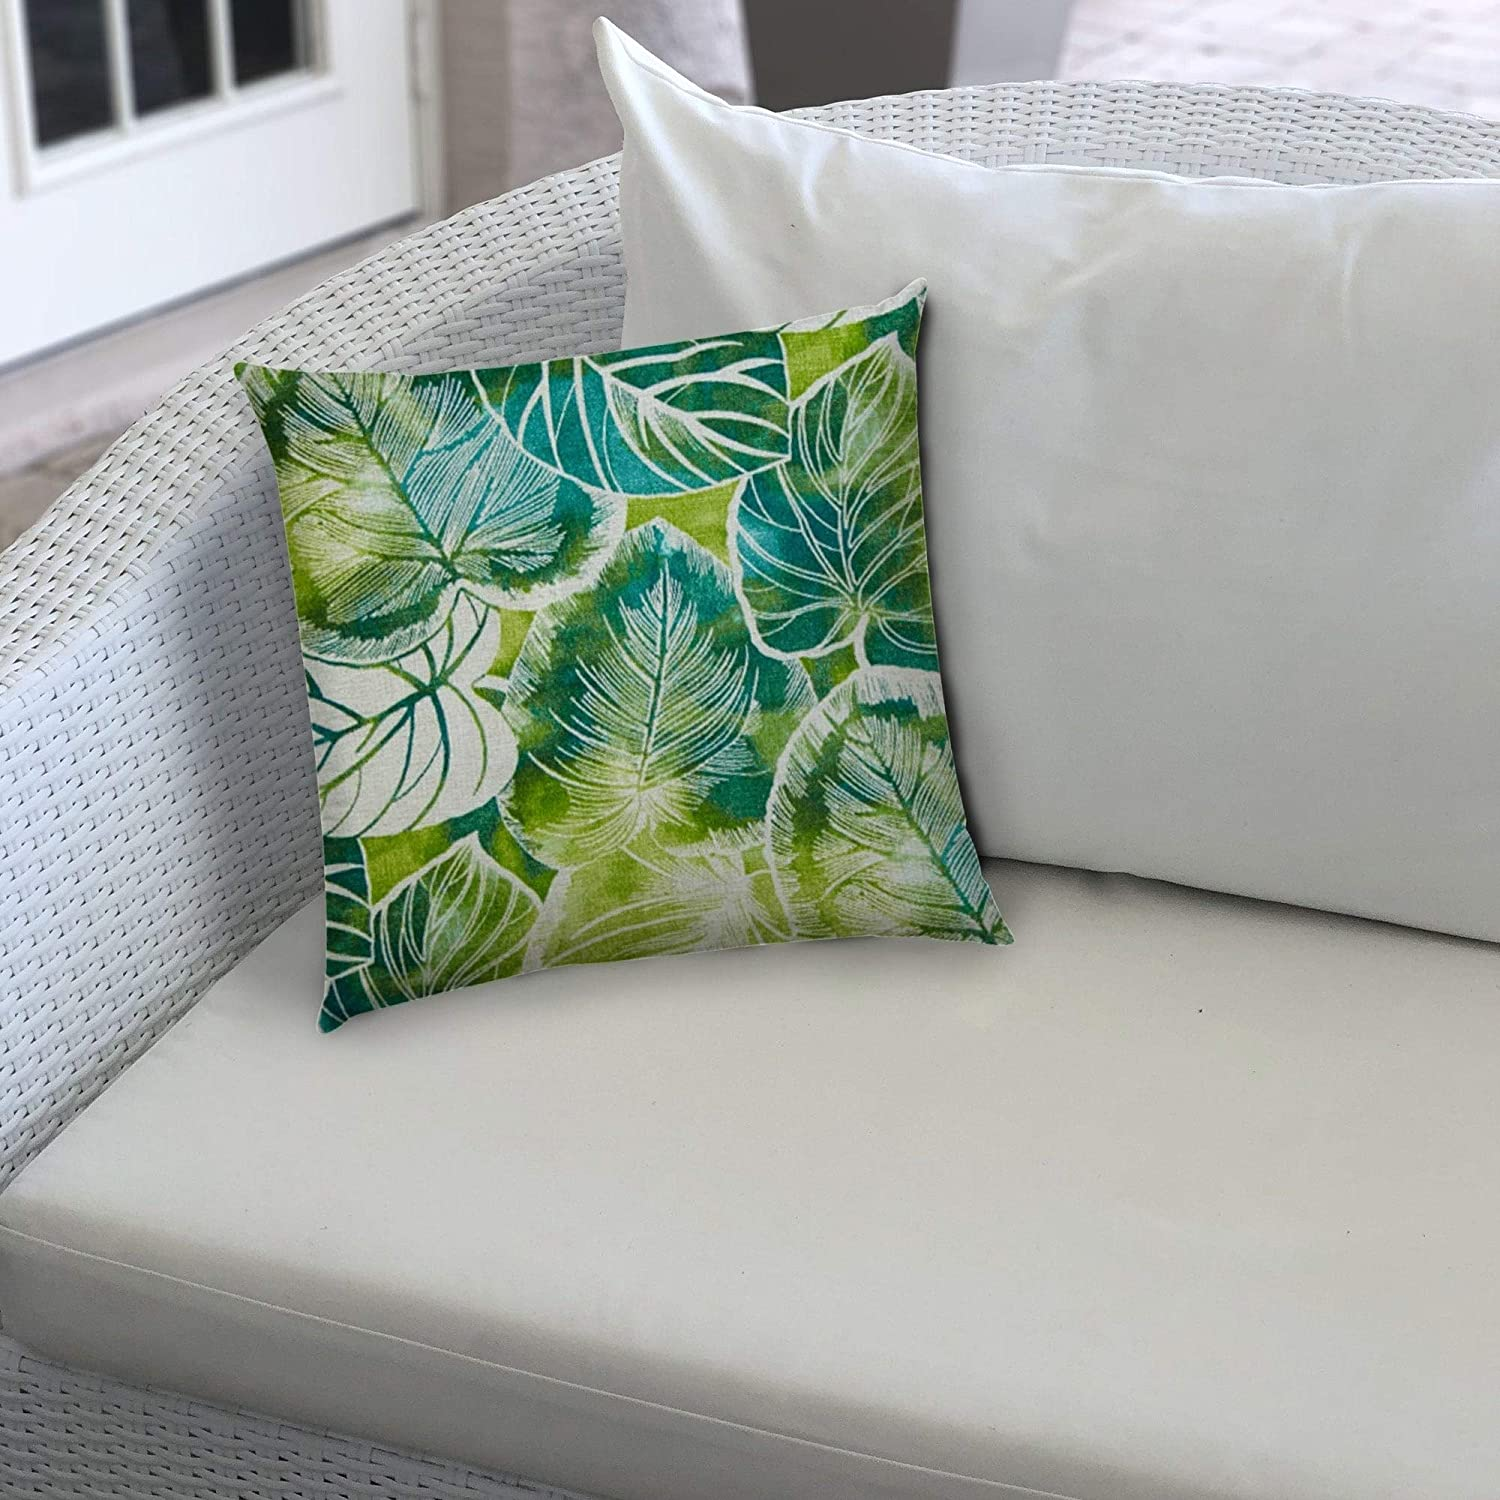 Teal Indoor/Outdoor Pillow Sewn Closure (Set 2) Color Graphic Modern Contemporary Polyester Water Resistant